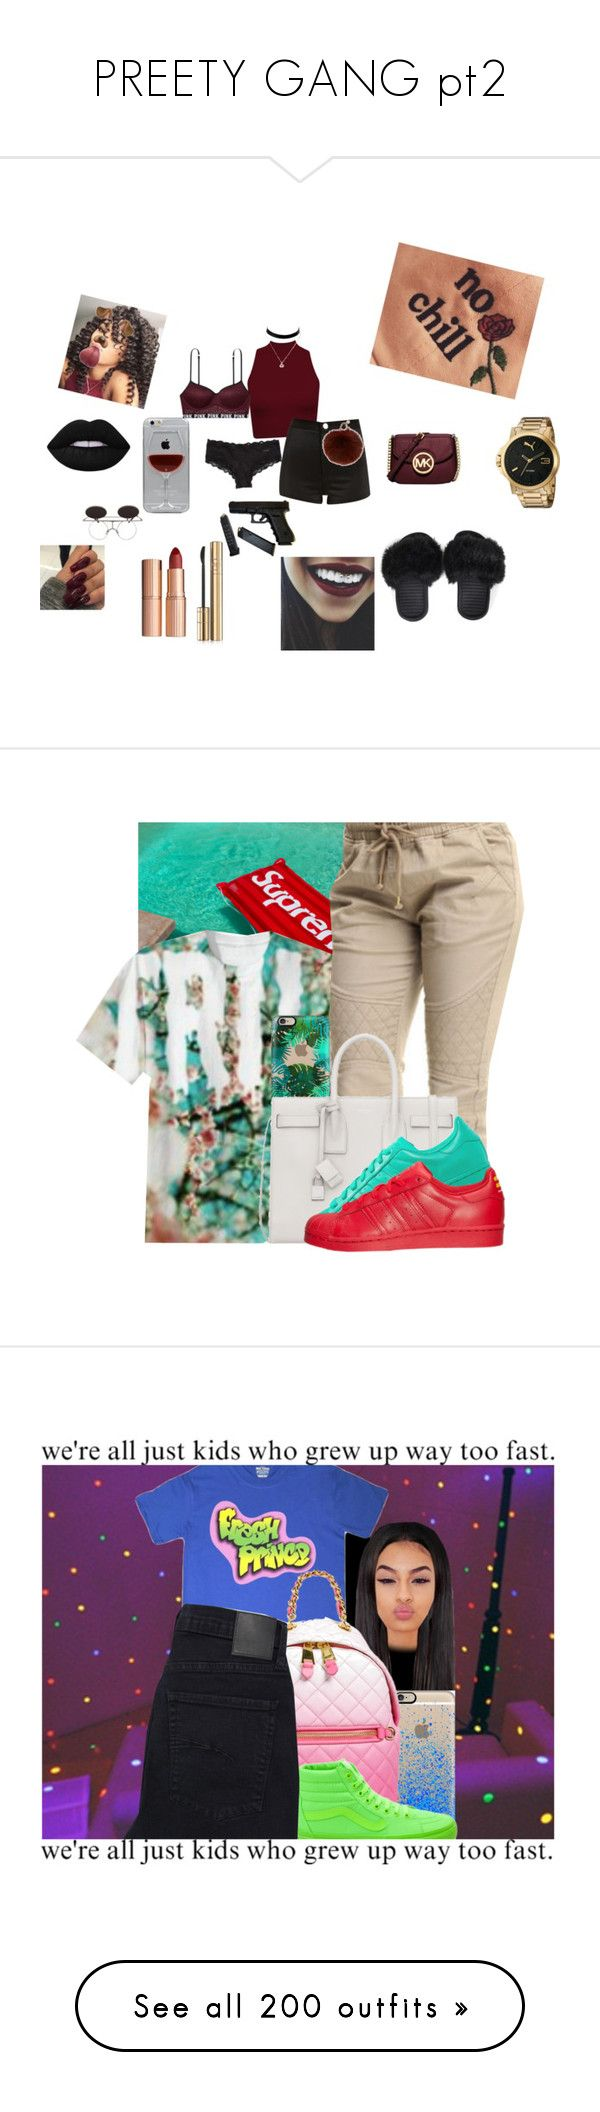 """""""PREETY GANG pt2"""" by onsavagemood ❤ liked on Polyvore featuring Michael Kors, River Island, Reyes, Yves Salomon, Charlotte Tilbury, Lime Crime, Calvin Klein, Puma, Dolce&Gabbana and Casetify"""